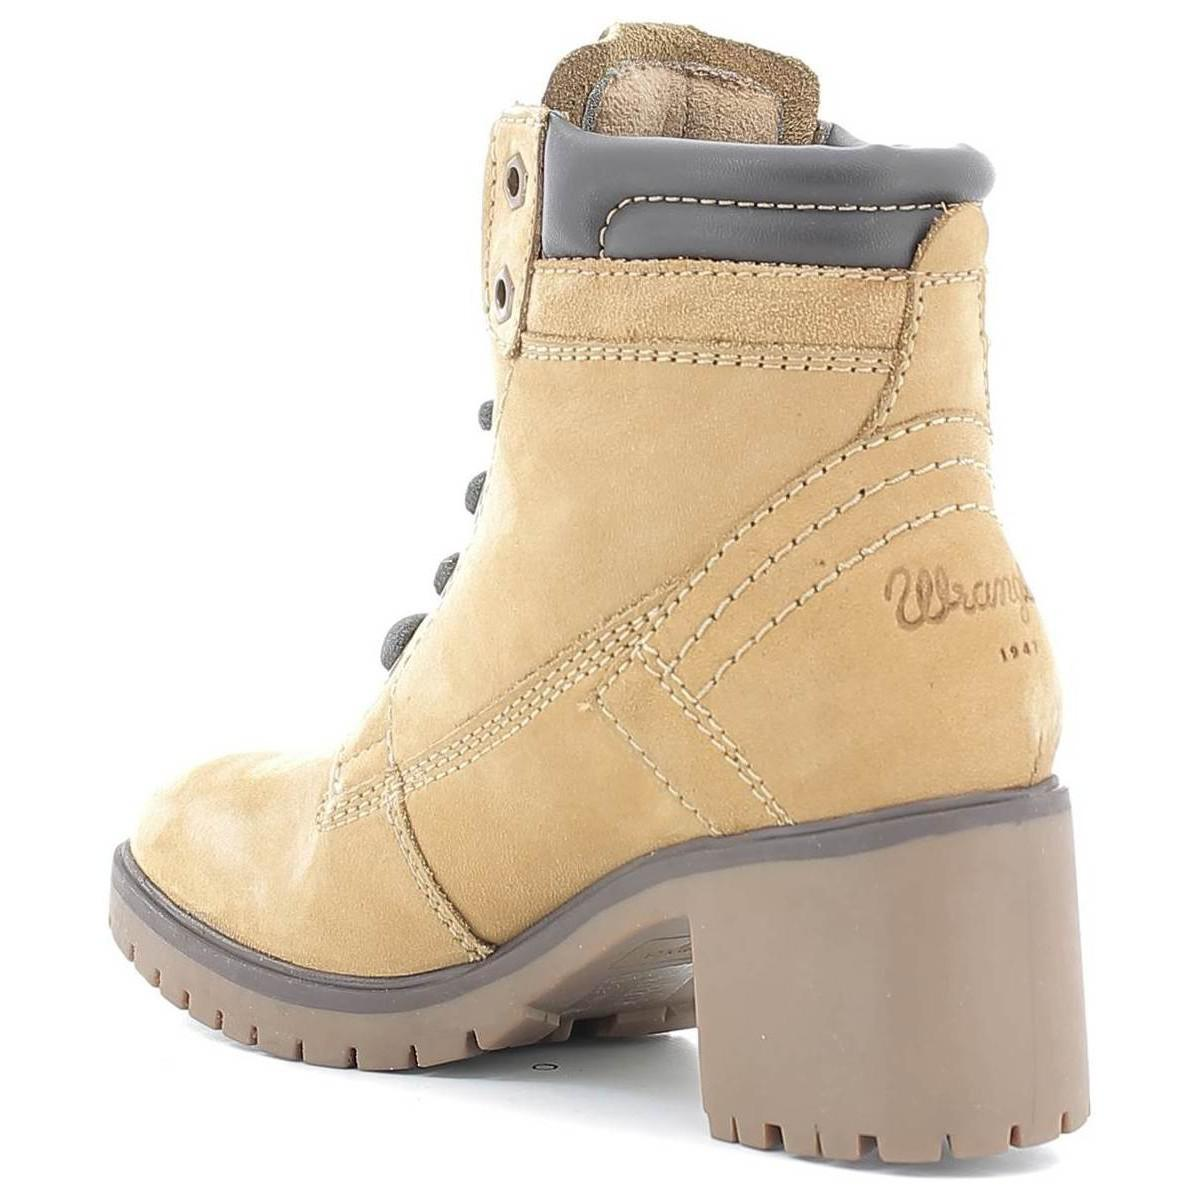 Wrangler Wl162520 Ankle Boots Women Tan Women's Mid Boots In Brown